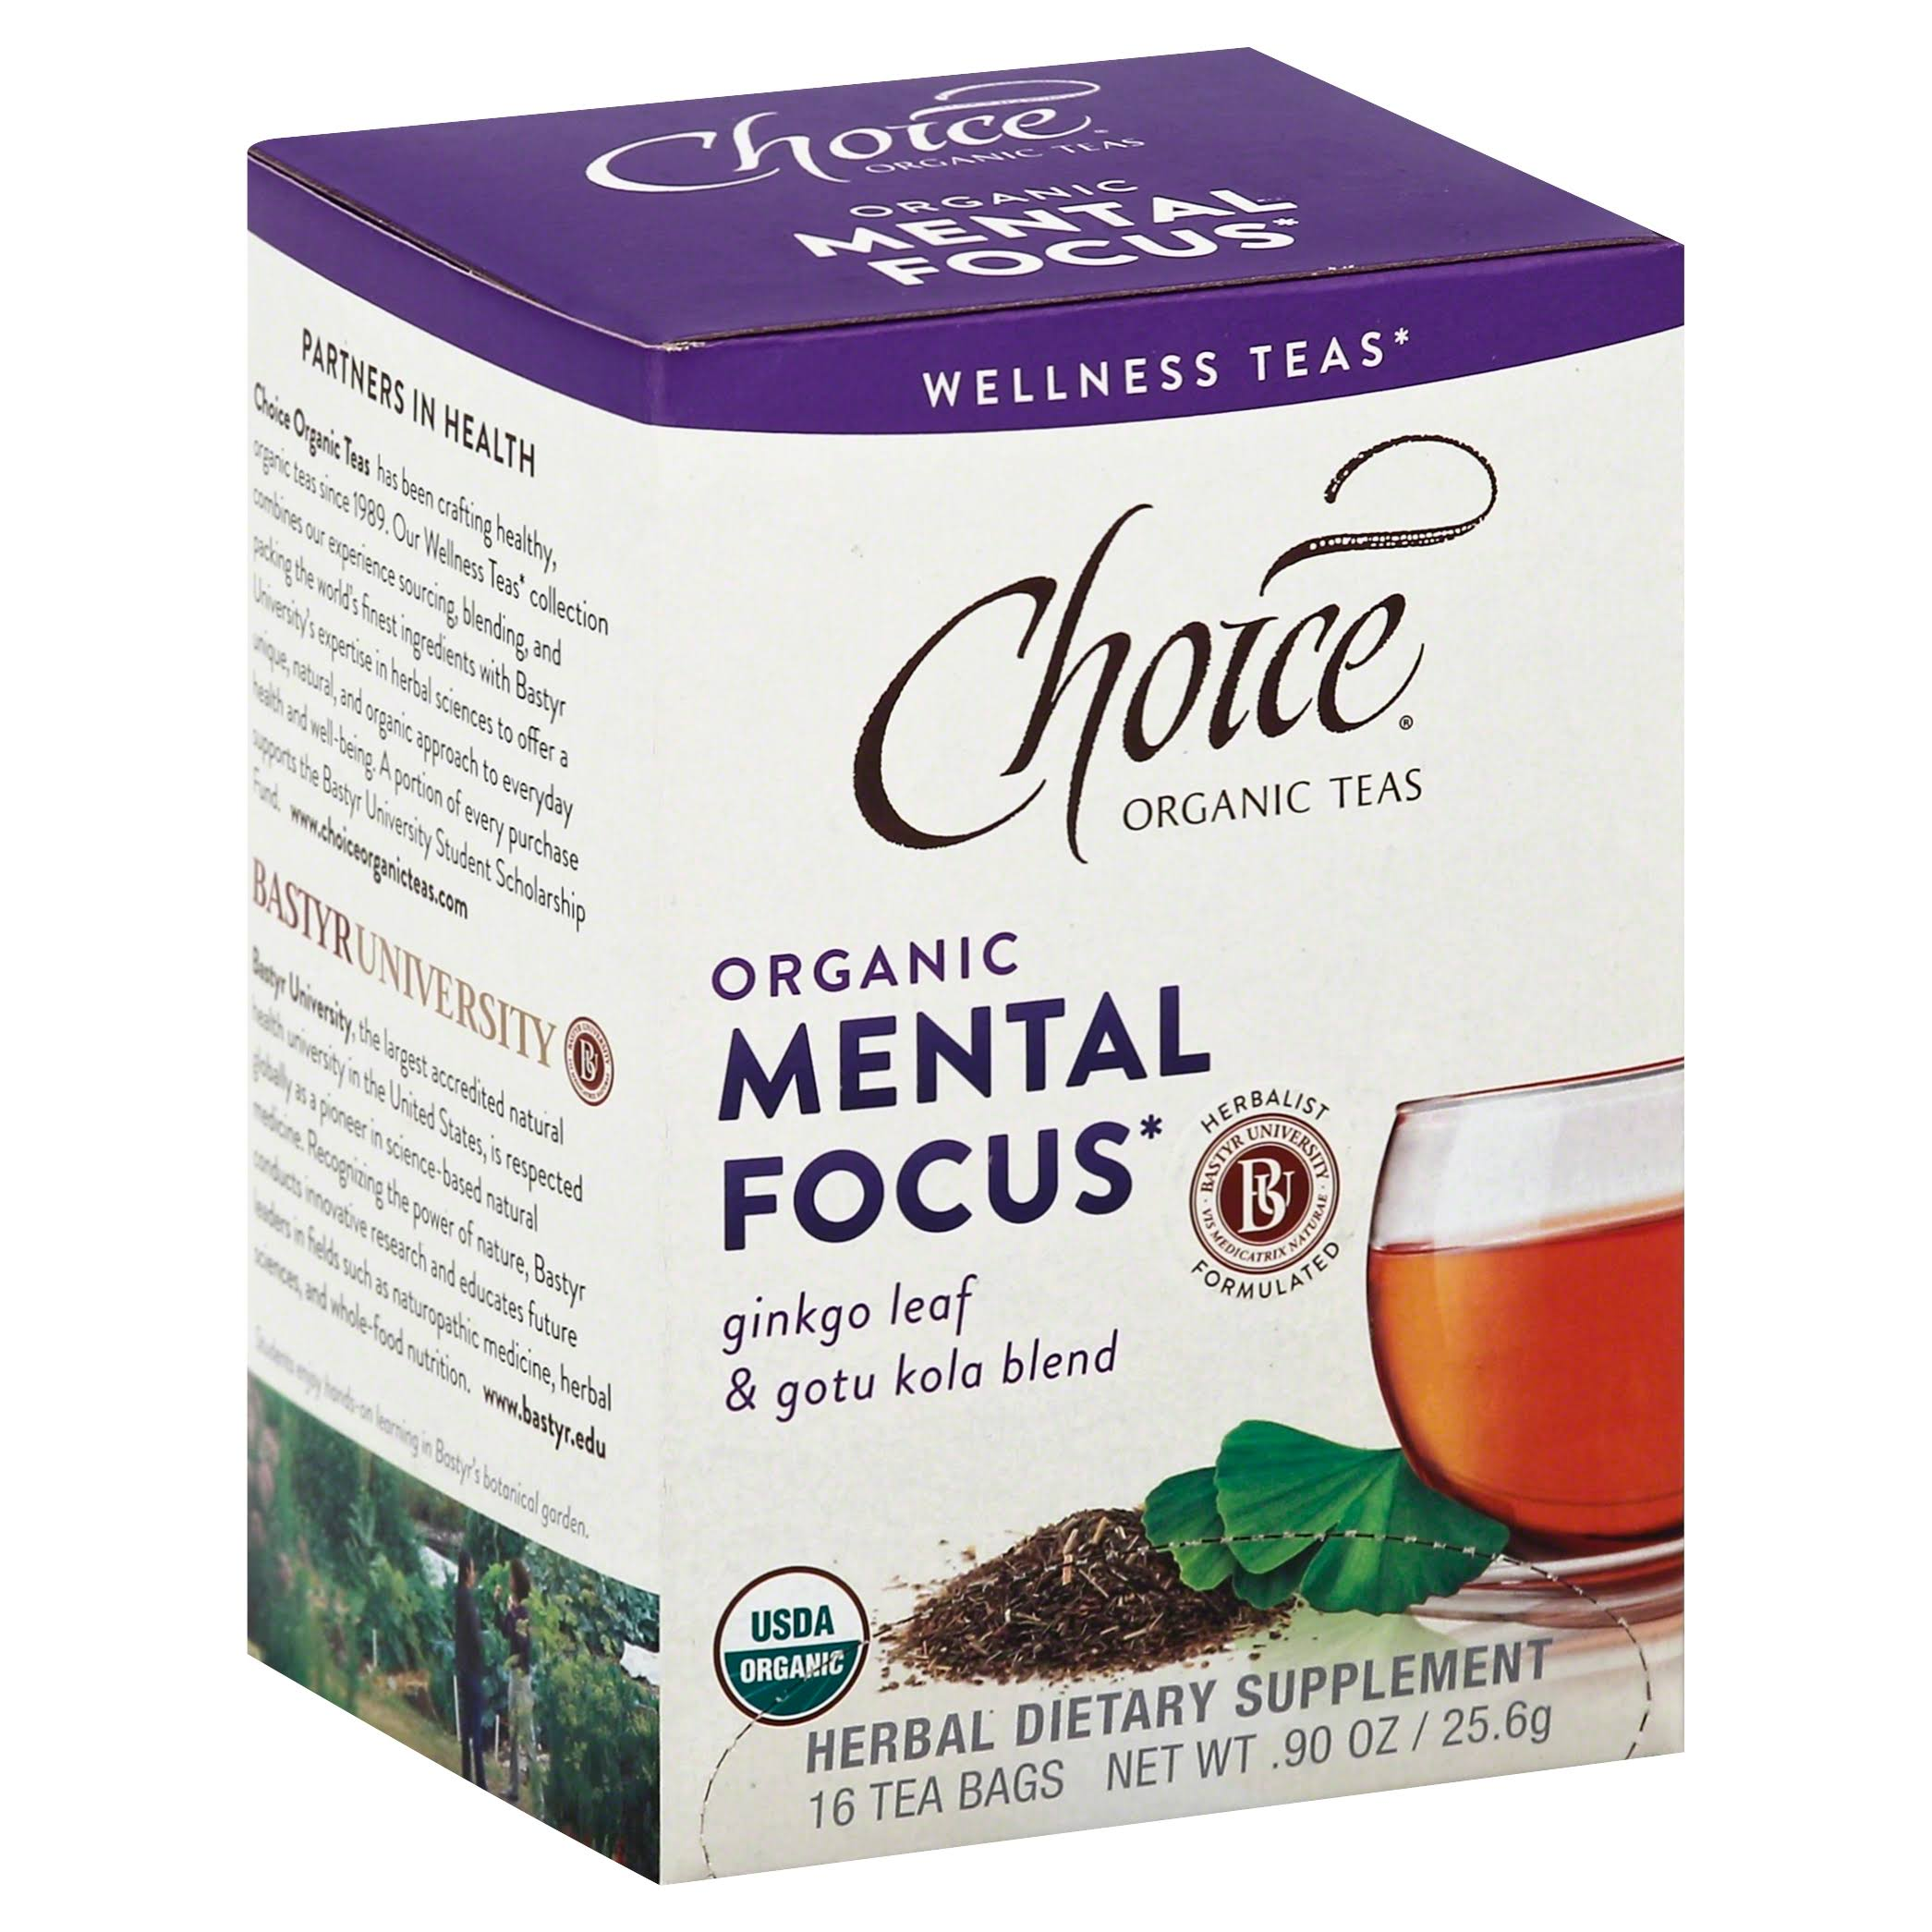 Choice Organic Mental Focus Tea - Ginkgo Leaf and Gotu Kola Blend